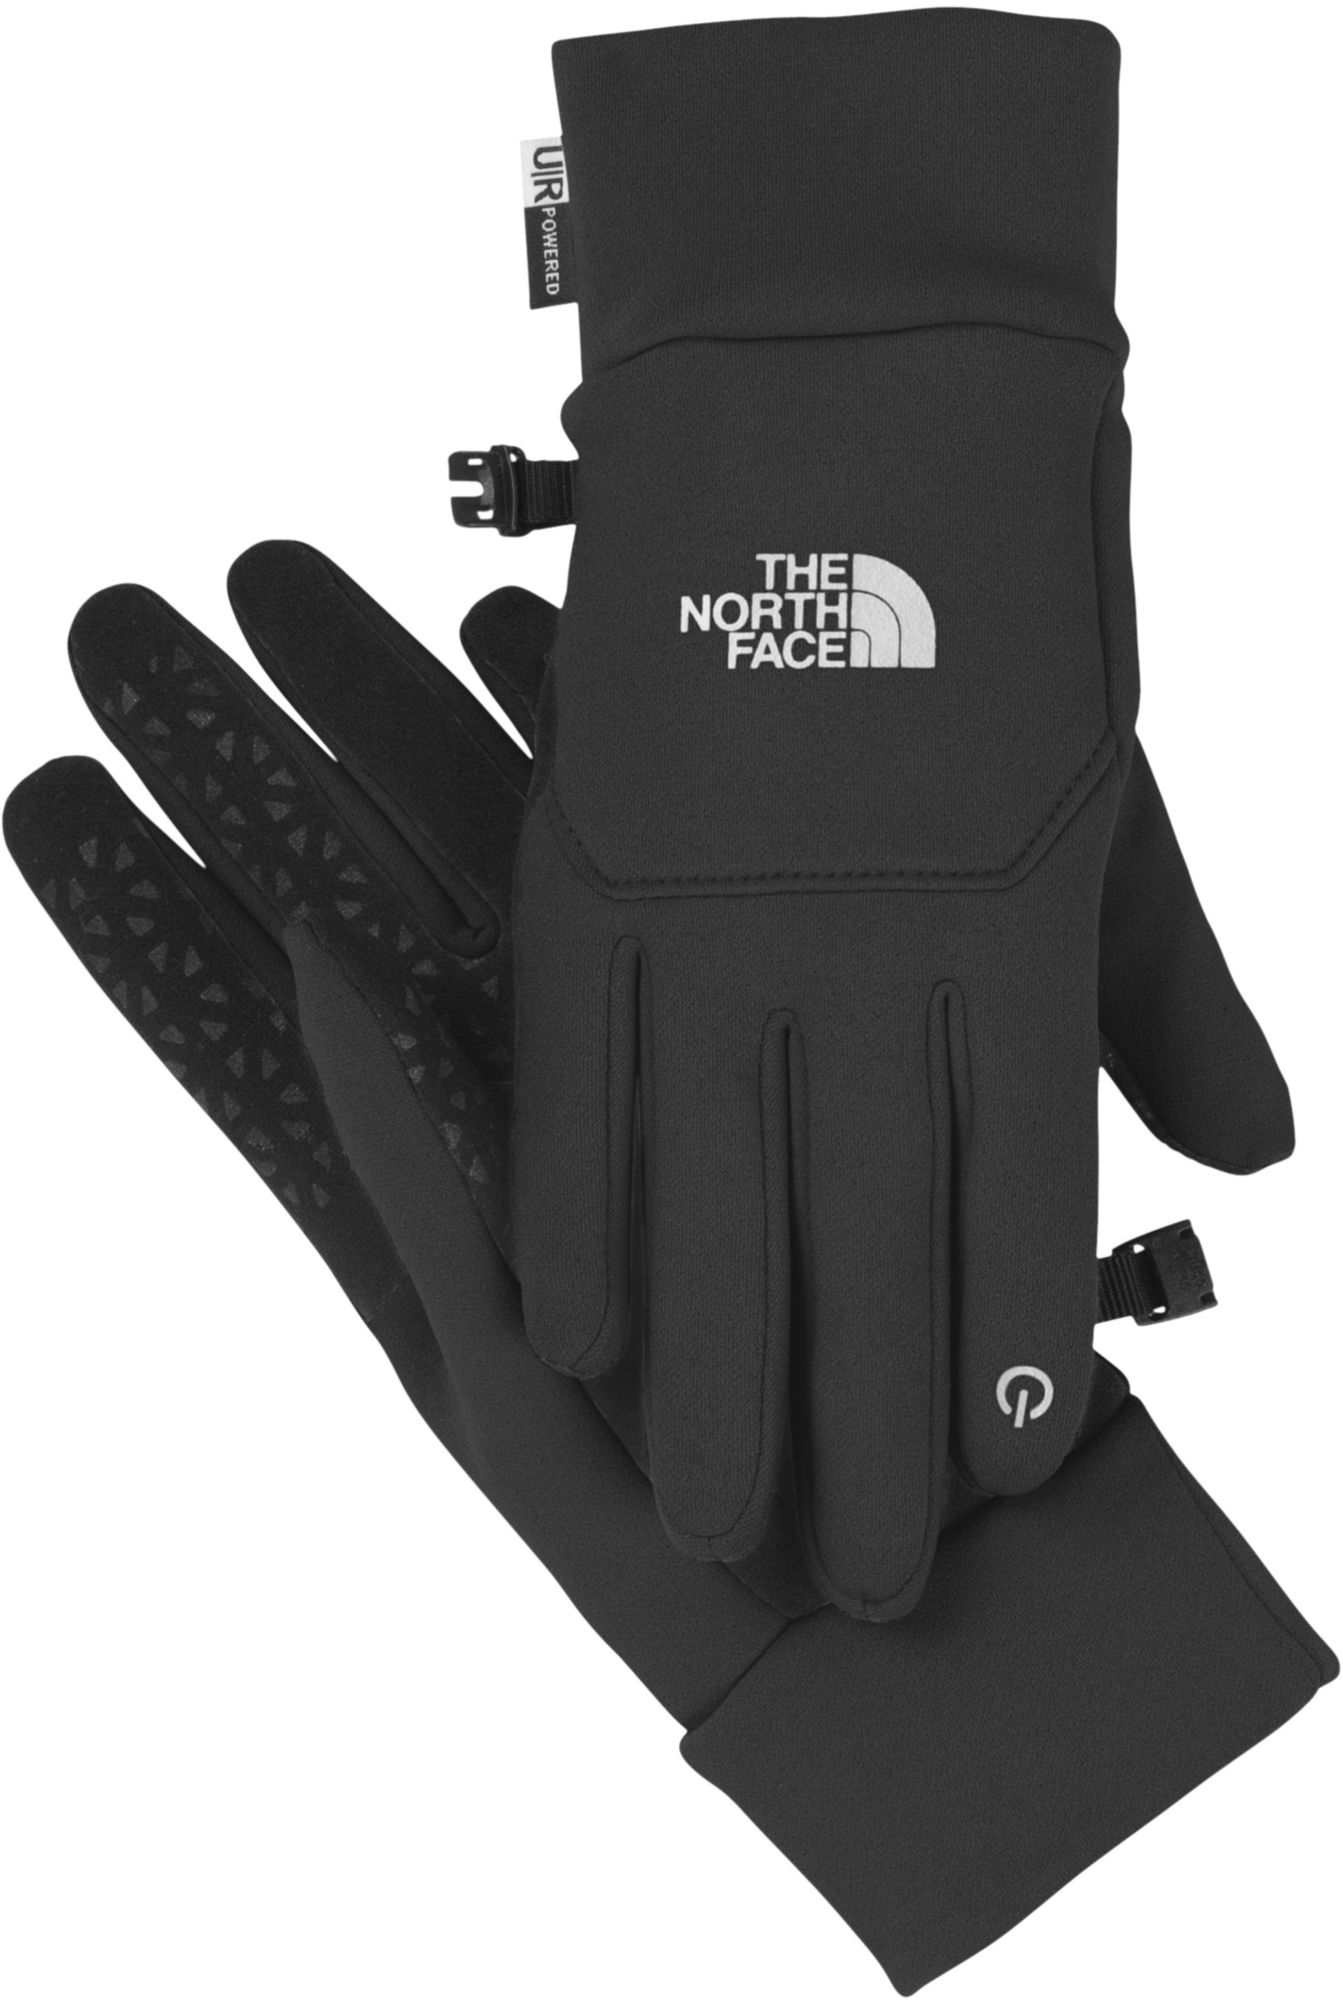 2b6529b10 The North Face Women's Etip Gloves